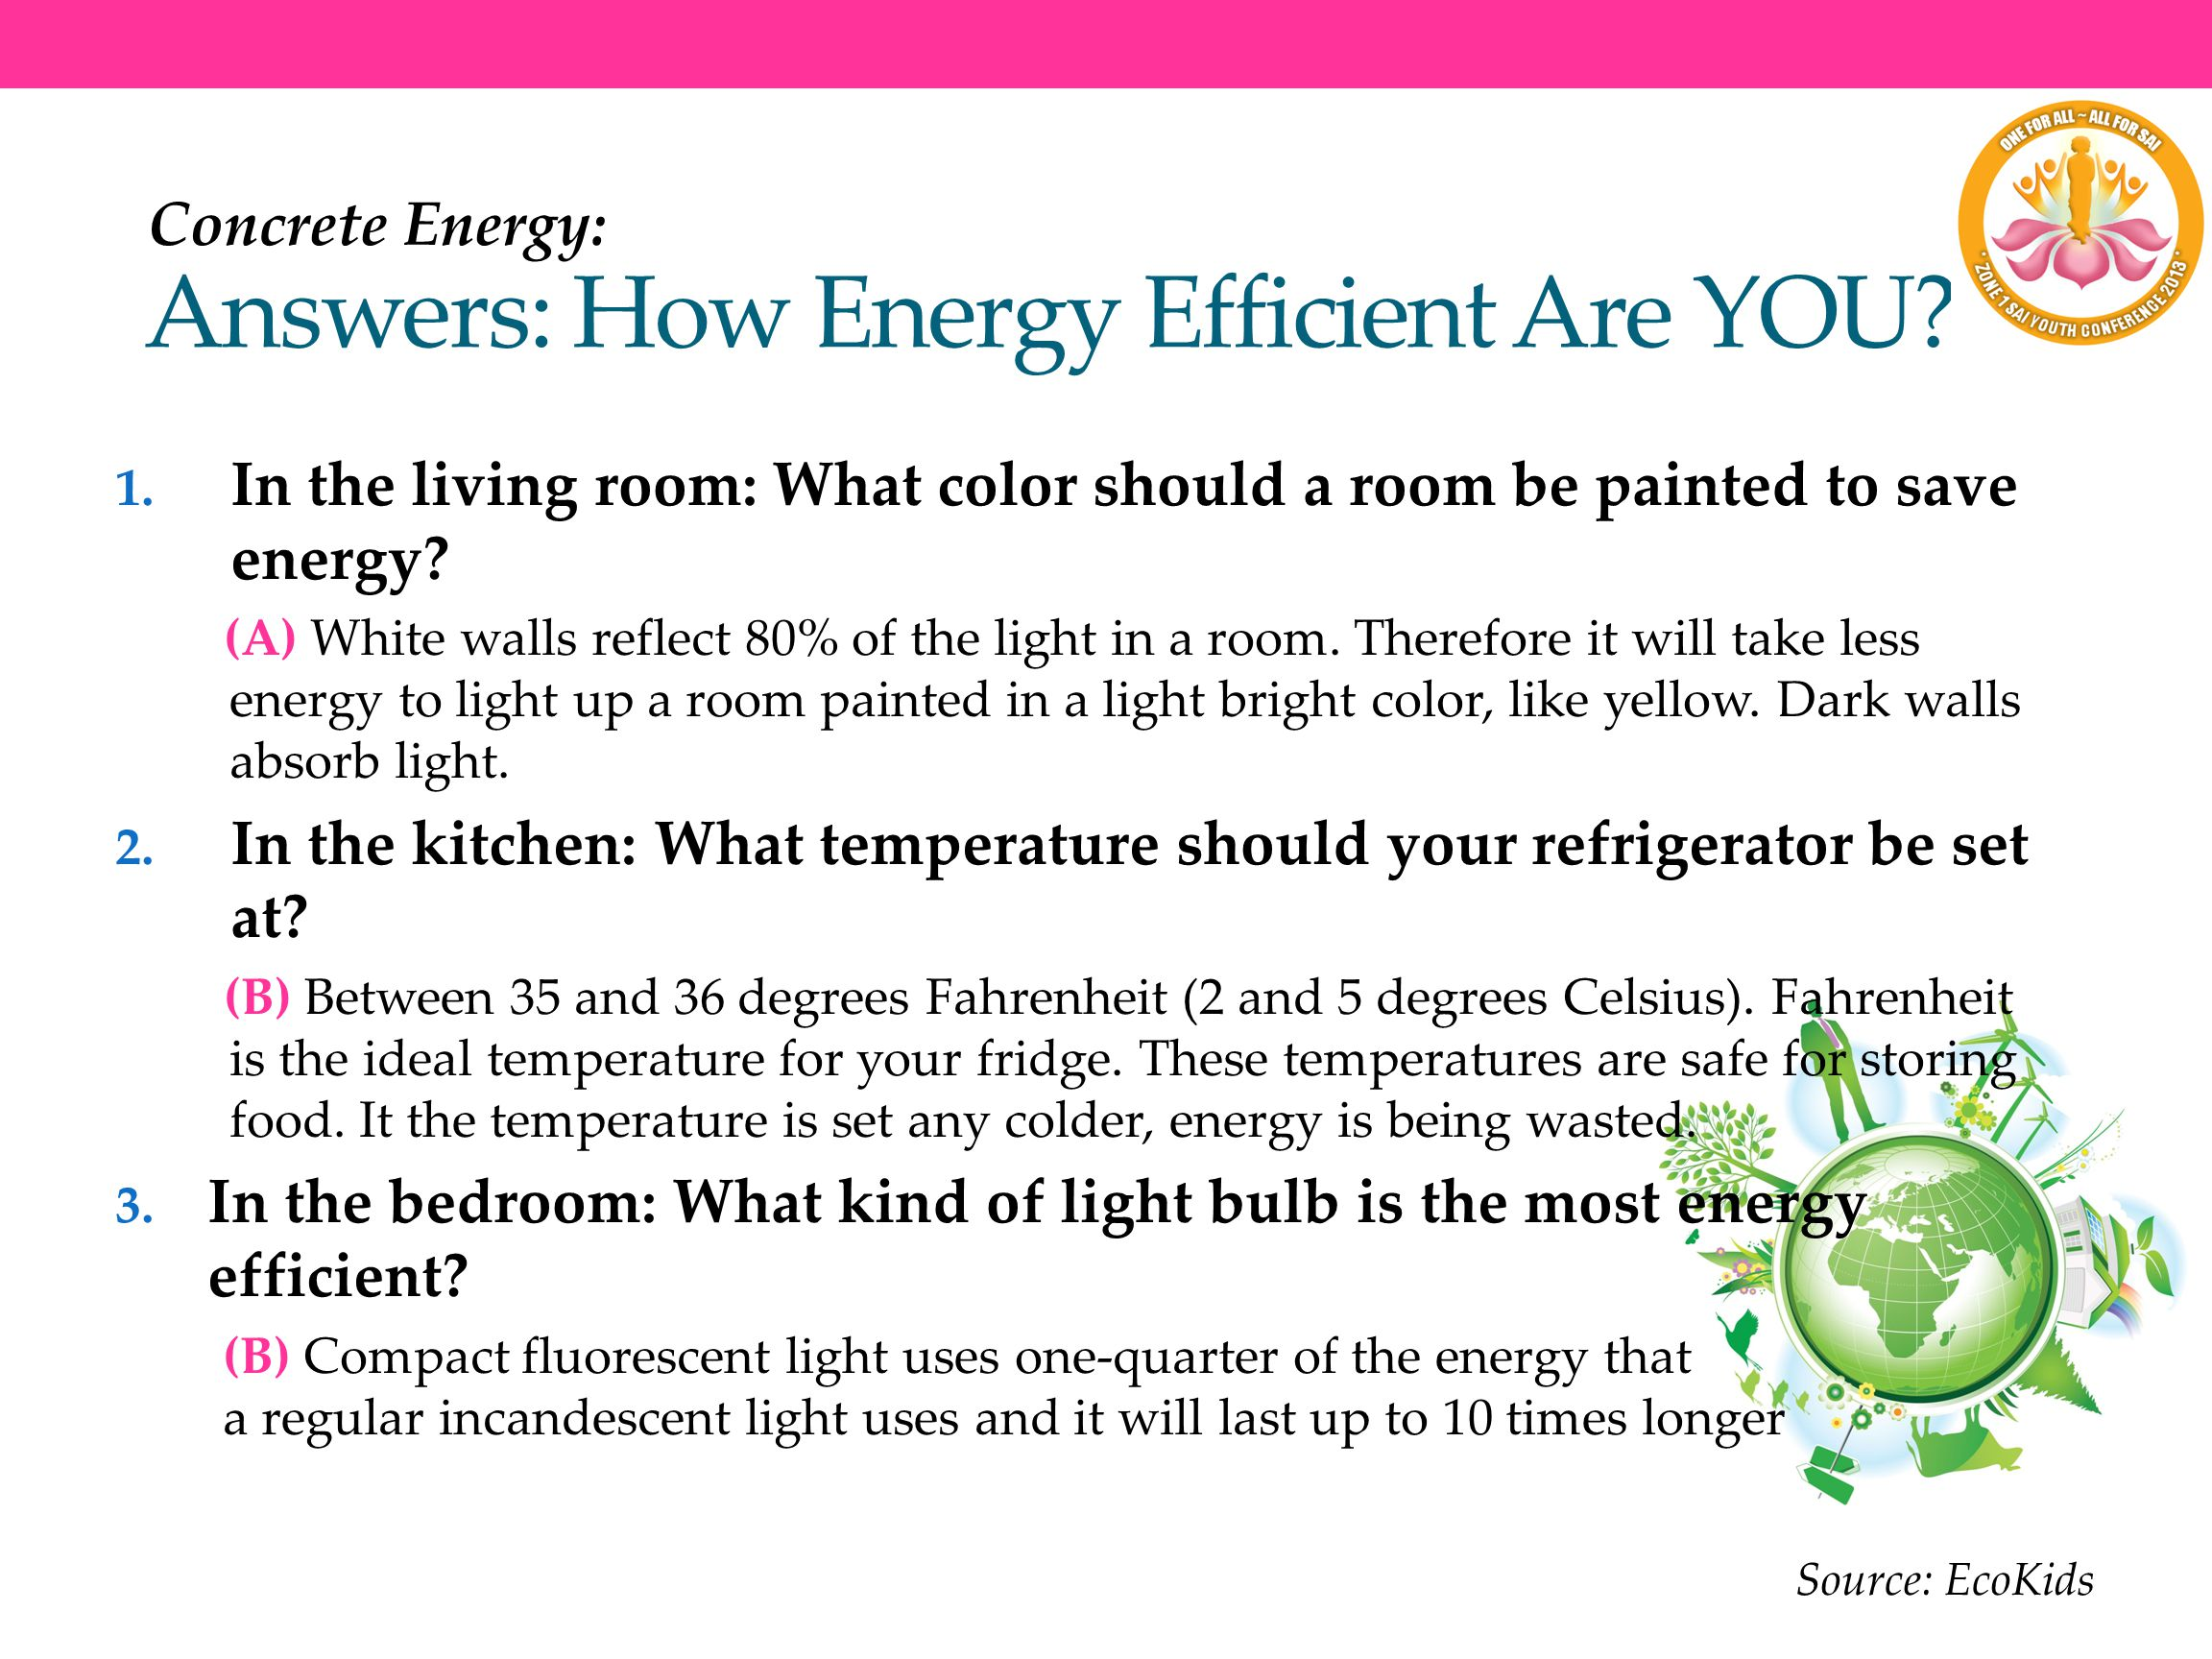 Answers: How Energy Efficient Are YOU